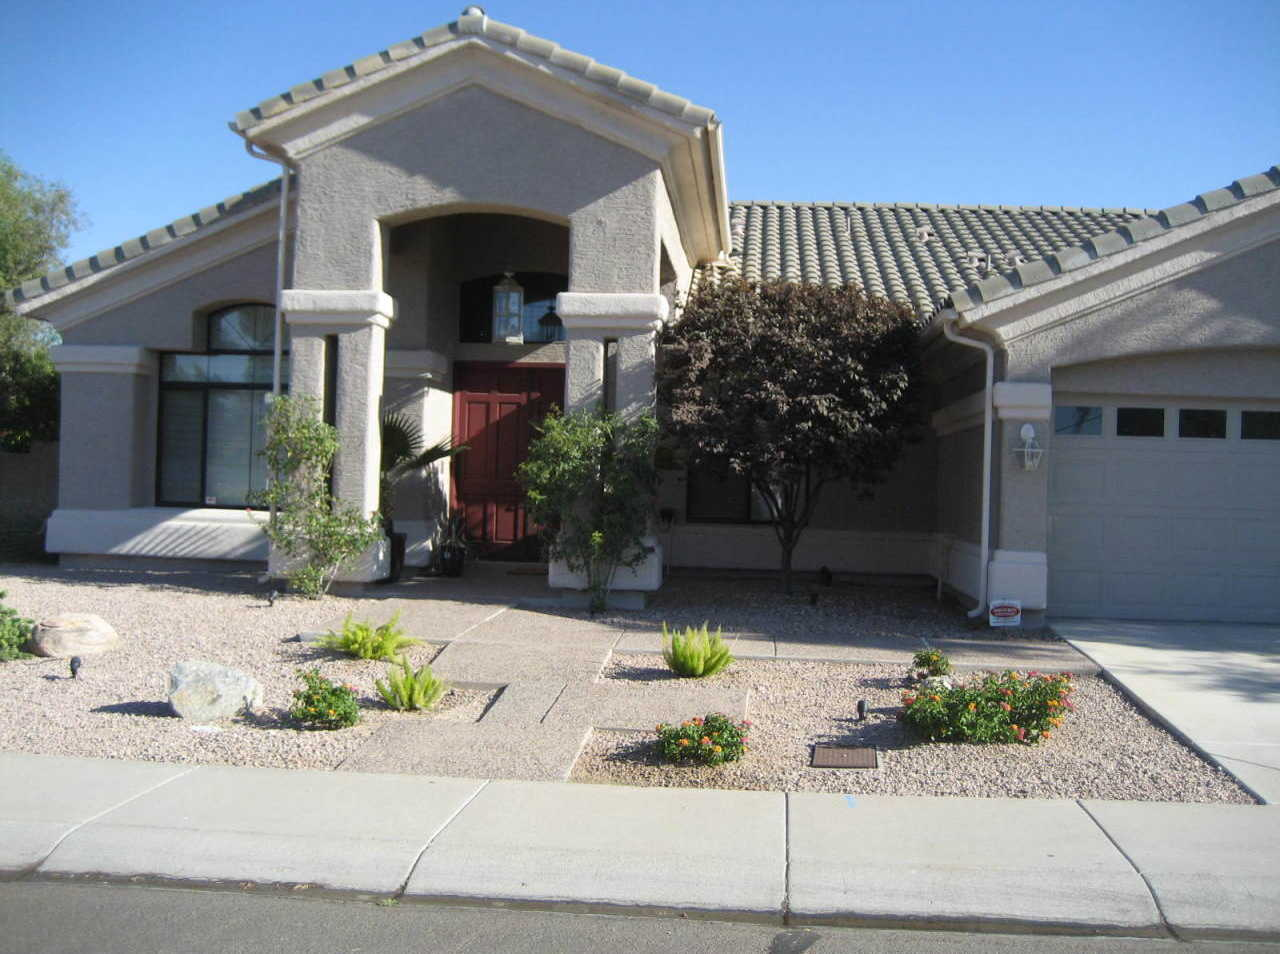 $799,900 - 4Br/3Ba - Home for Sale in Promontory Lot 81-168 Tr A-c, Scottsdale